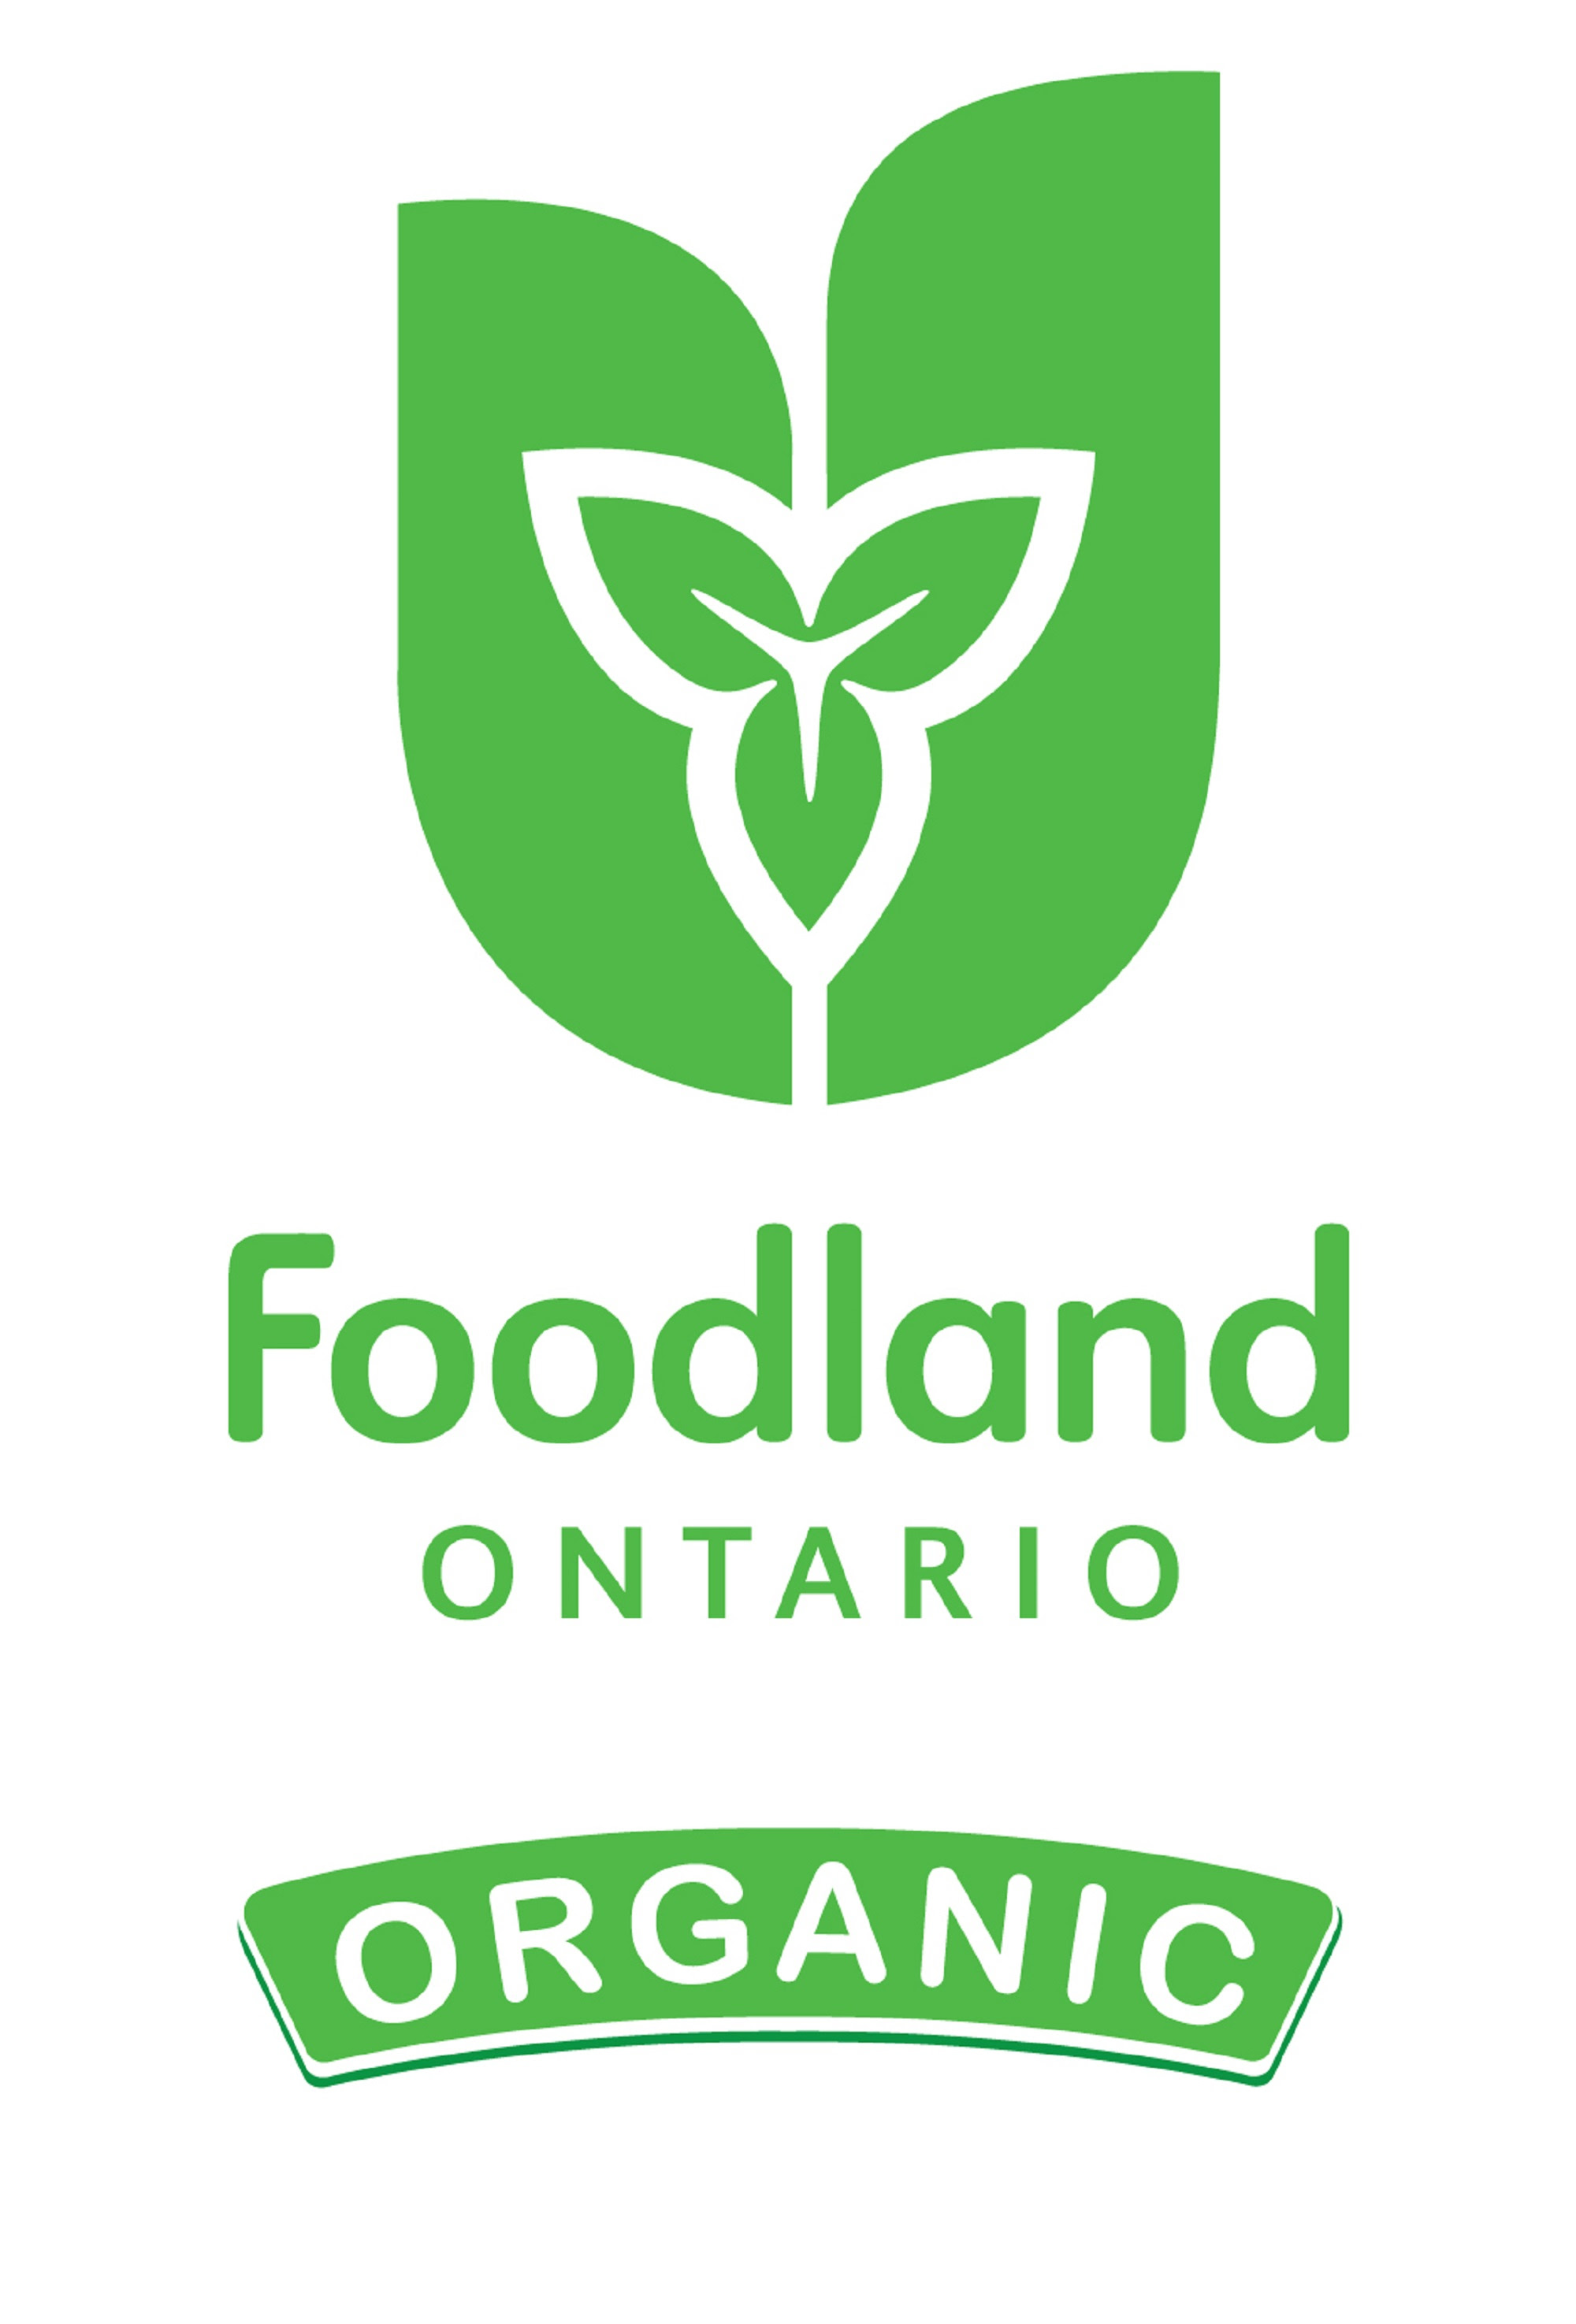 Organic Council Celebrates Organic Week with New #LoveOntarioOrganic Campaign